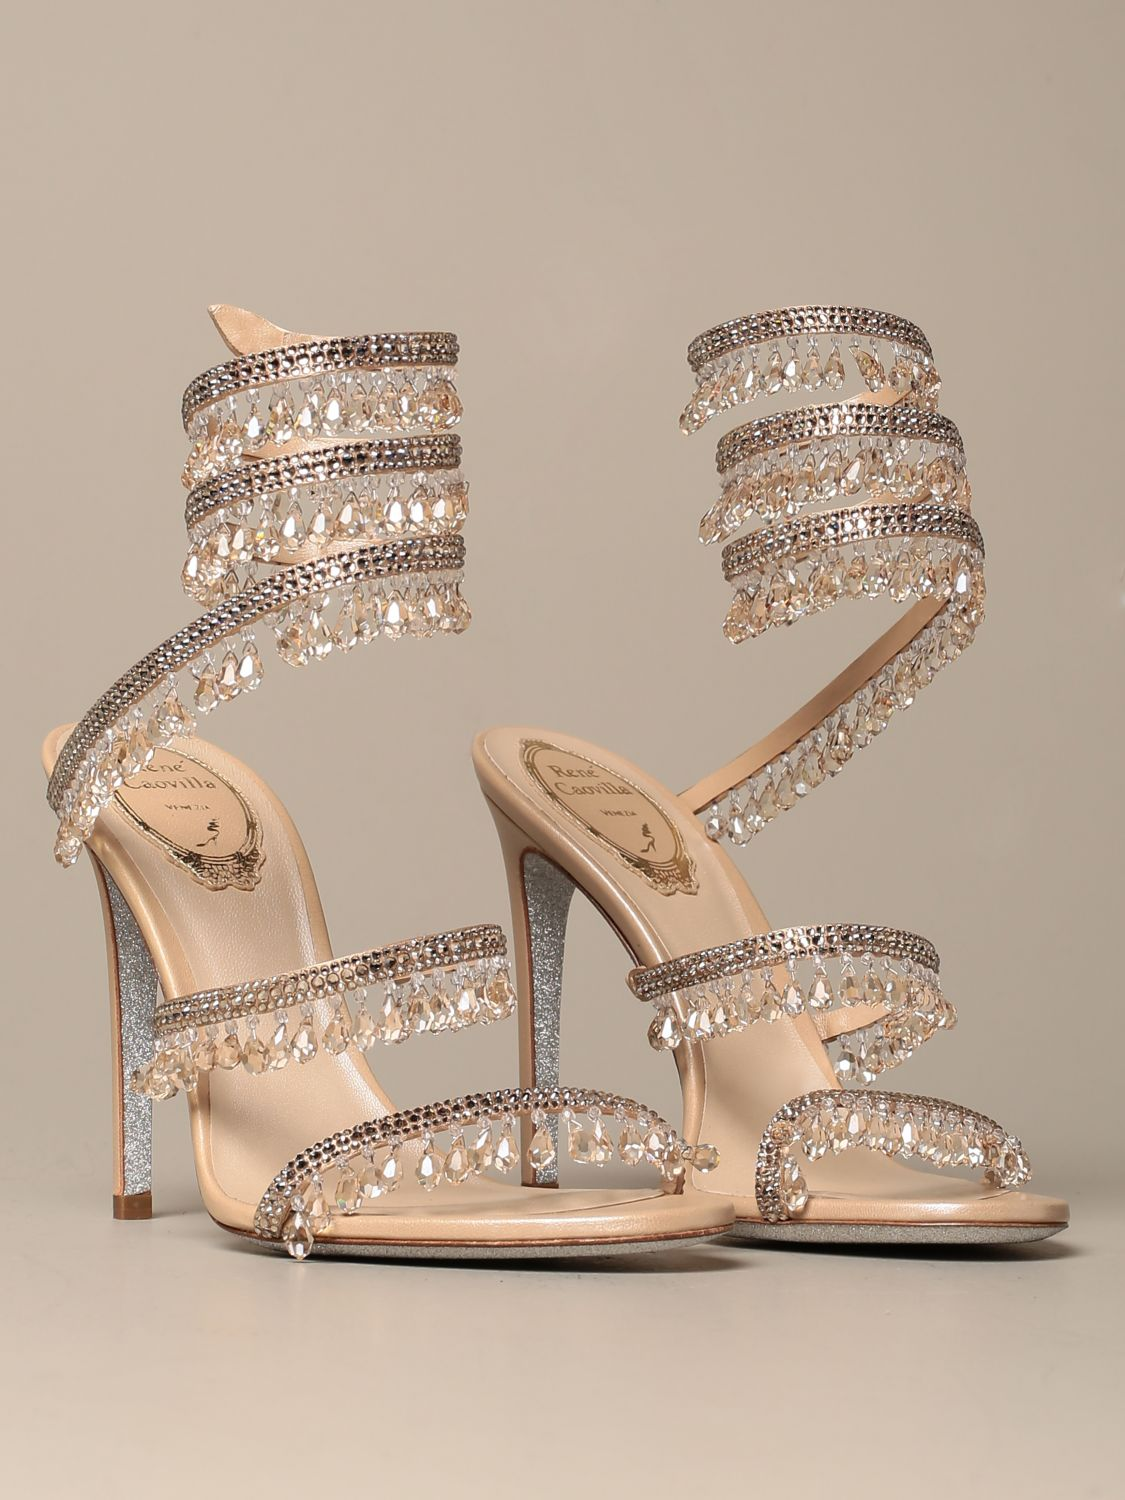 Heeled sandals Rene Caovilla: René Caovilla Chandelier sandal in satin with crystals and pendants nude 2